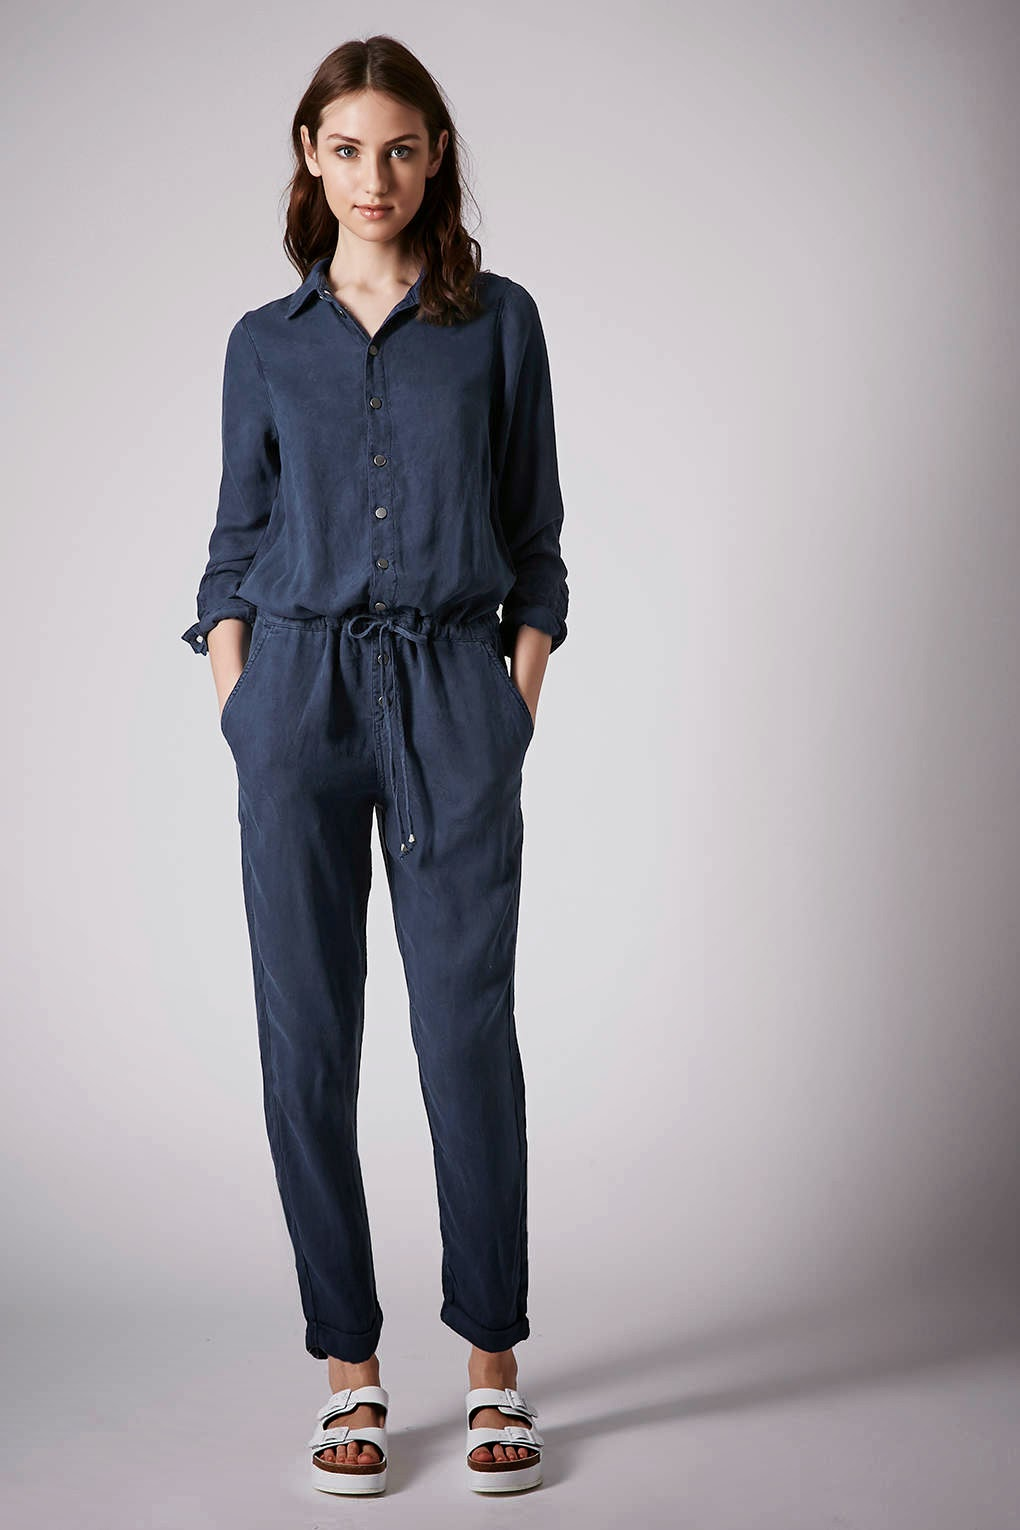 dark denim boilersuit